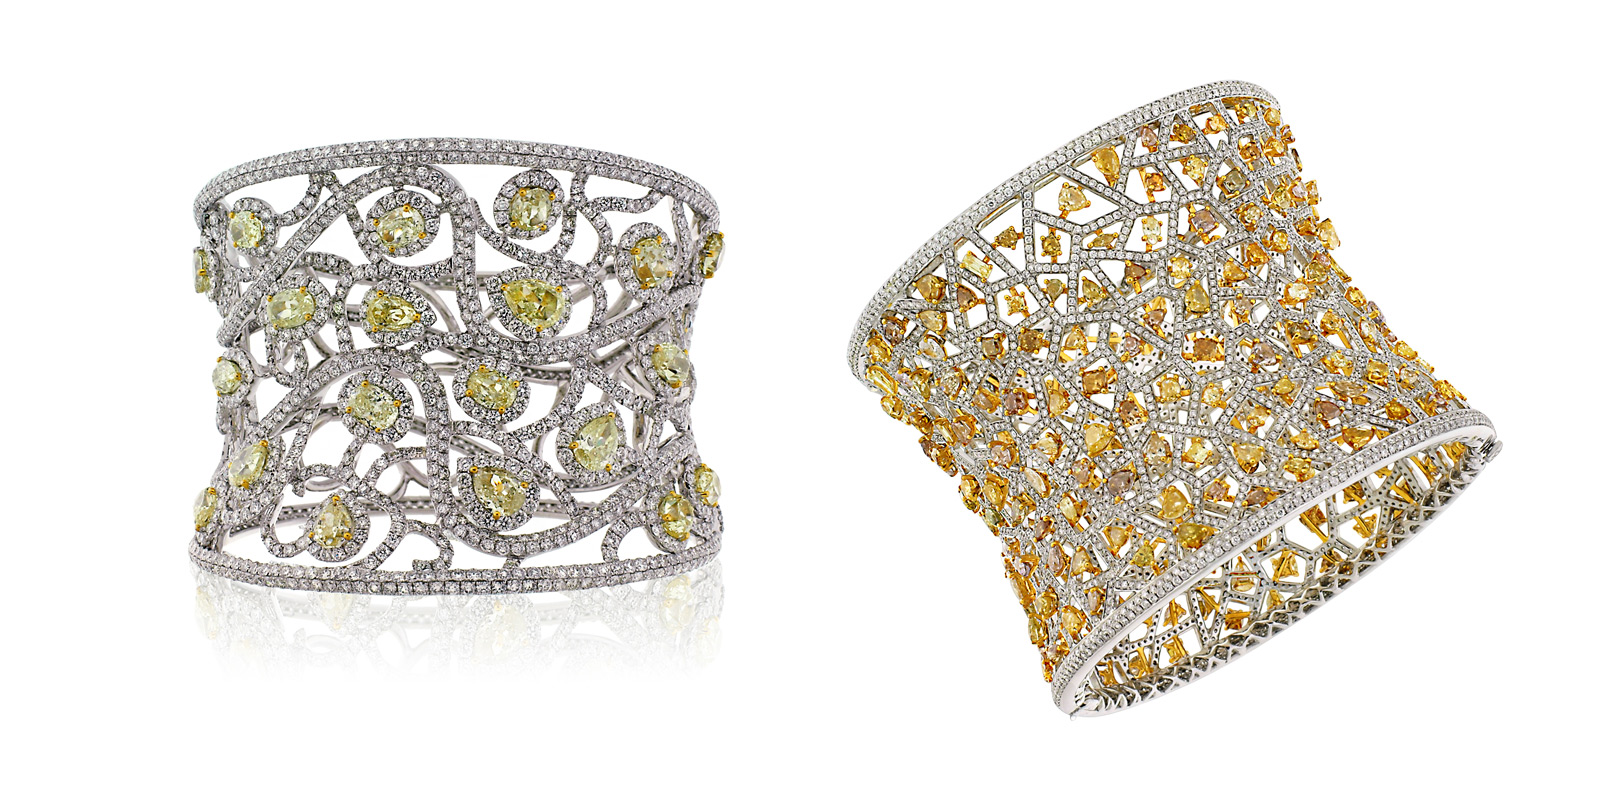 Avakian cuff bracelet in white gold with colourless and yellow diamonds